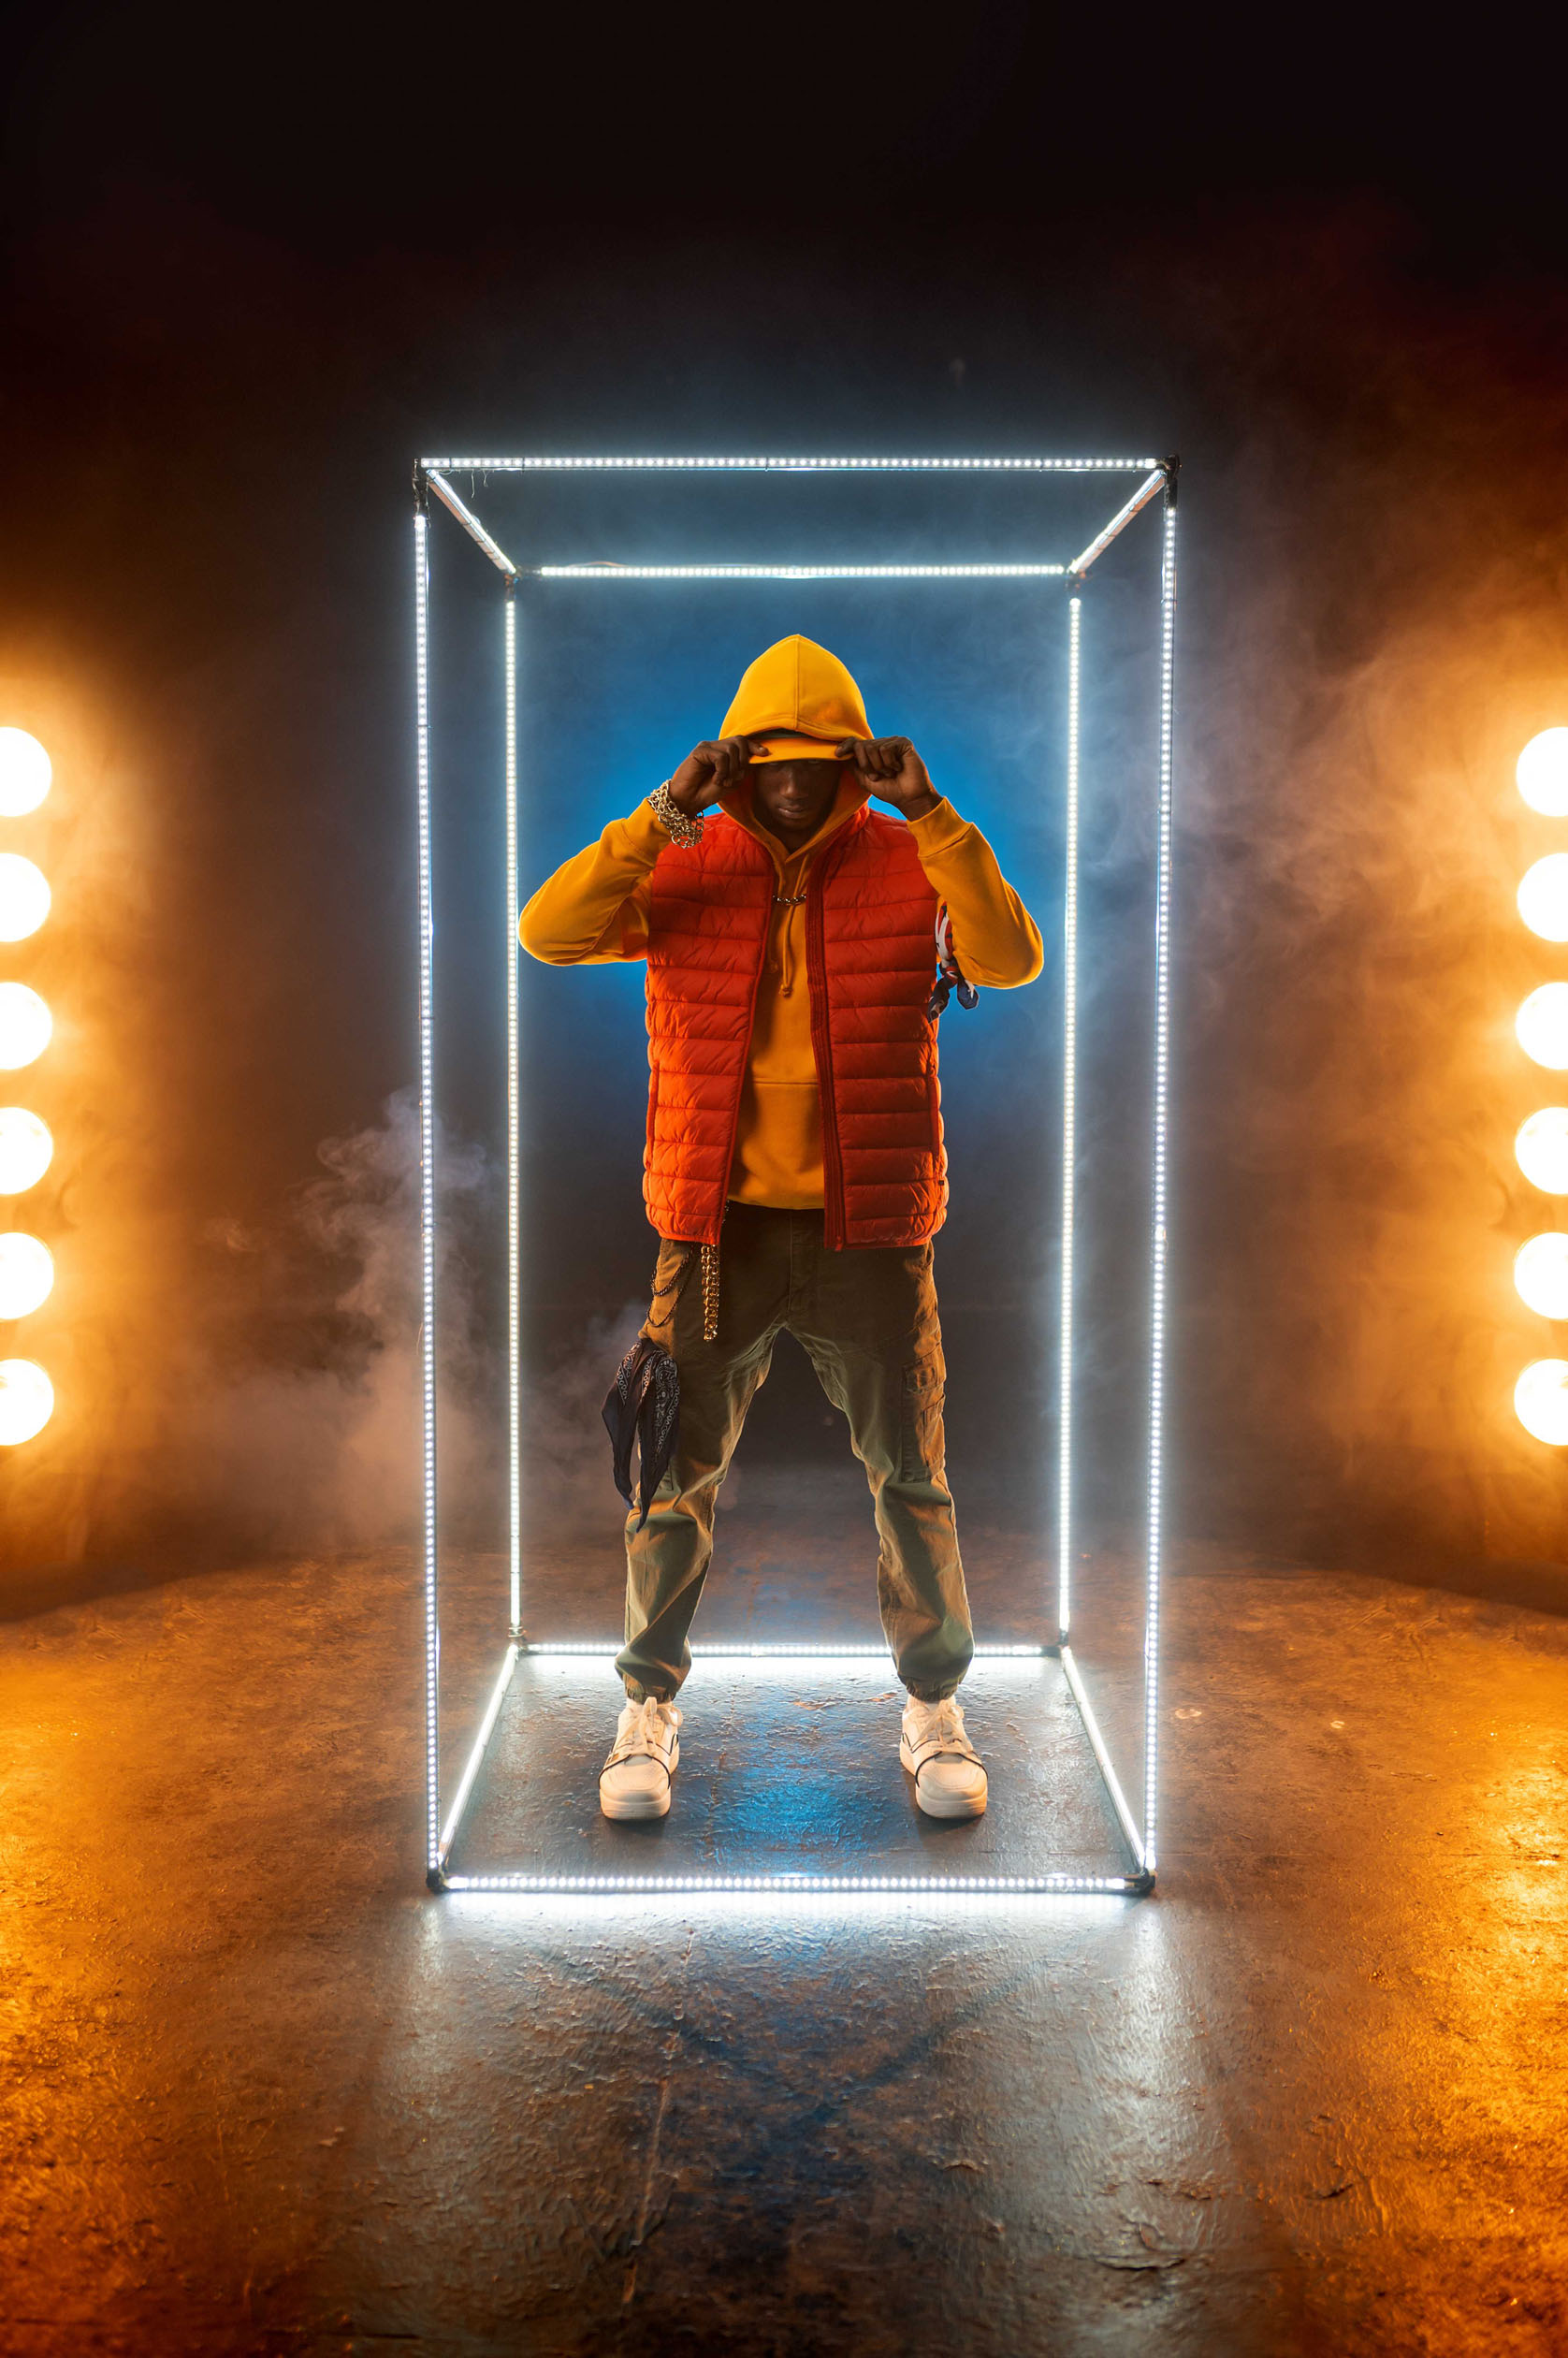 Stylish rapper poses in illuminated cube. Hip-hop performer, rap singer, break-dance performing, entertainment lifestyle